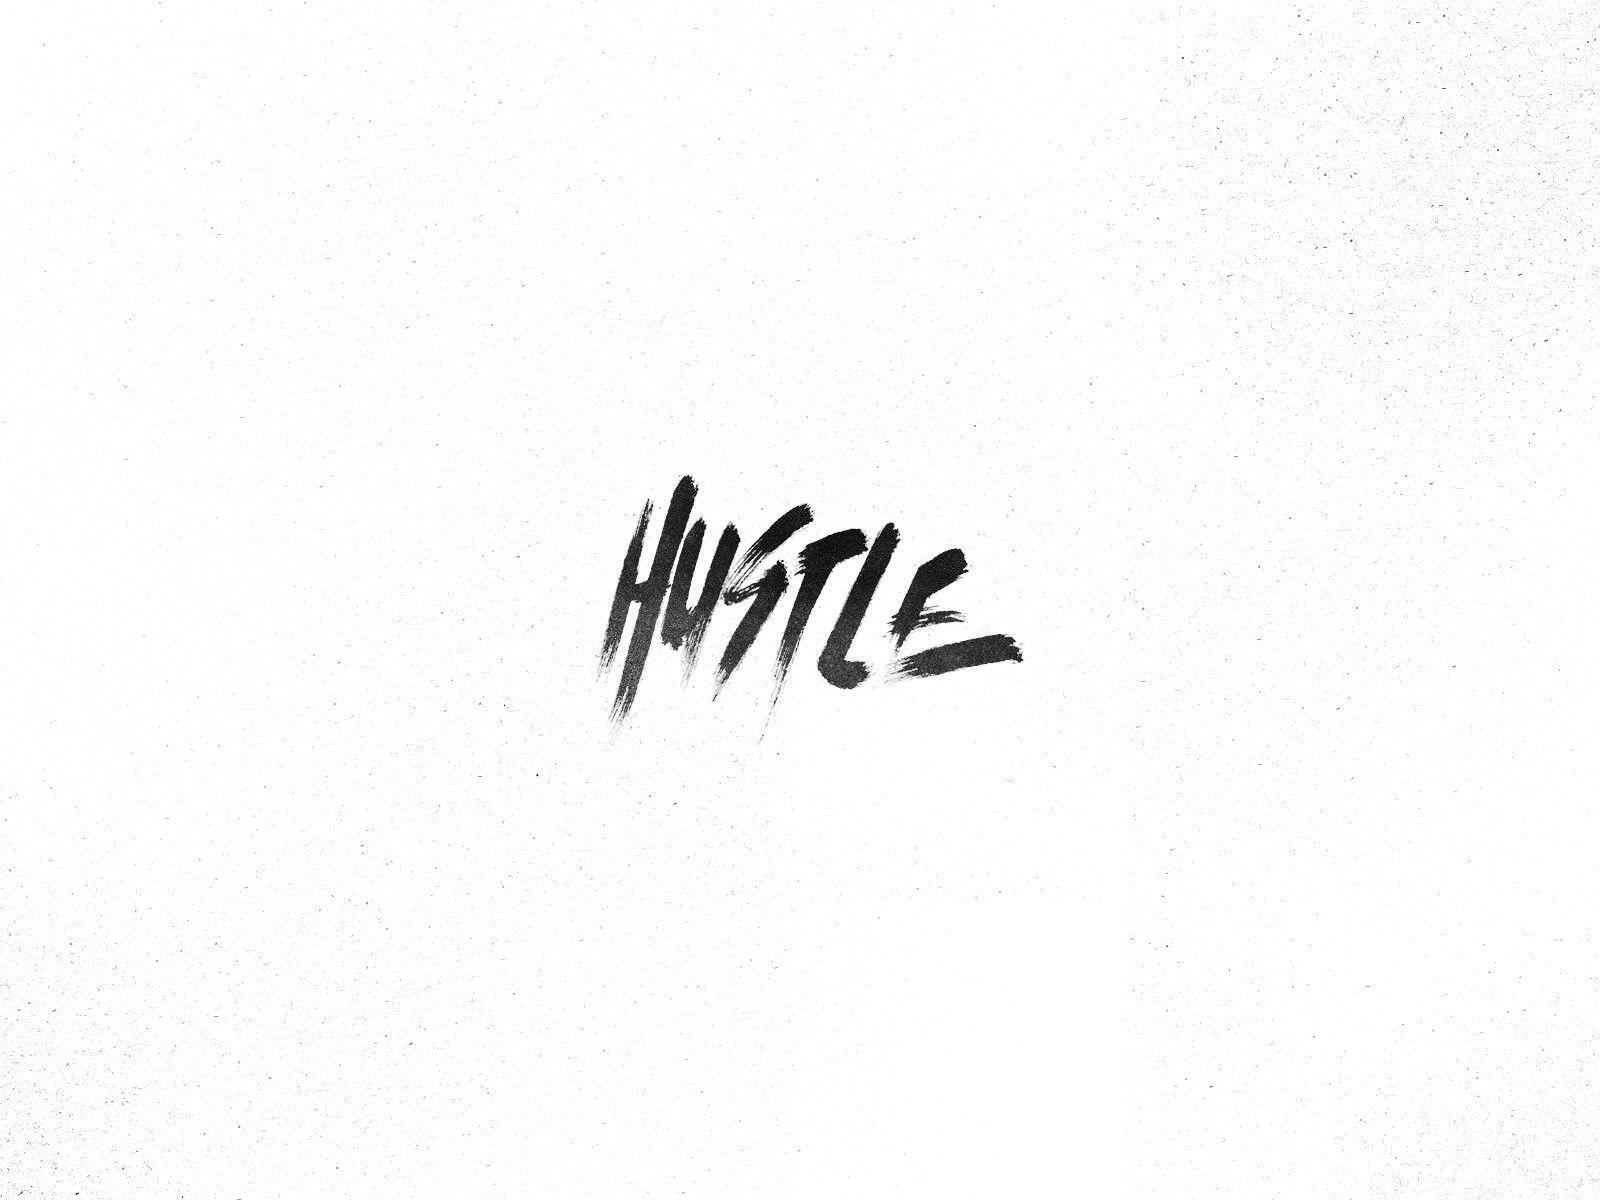 48 HD Quality Hustle Images Wallpapers Base